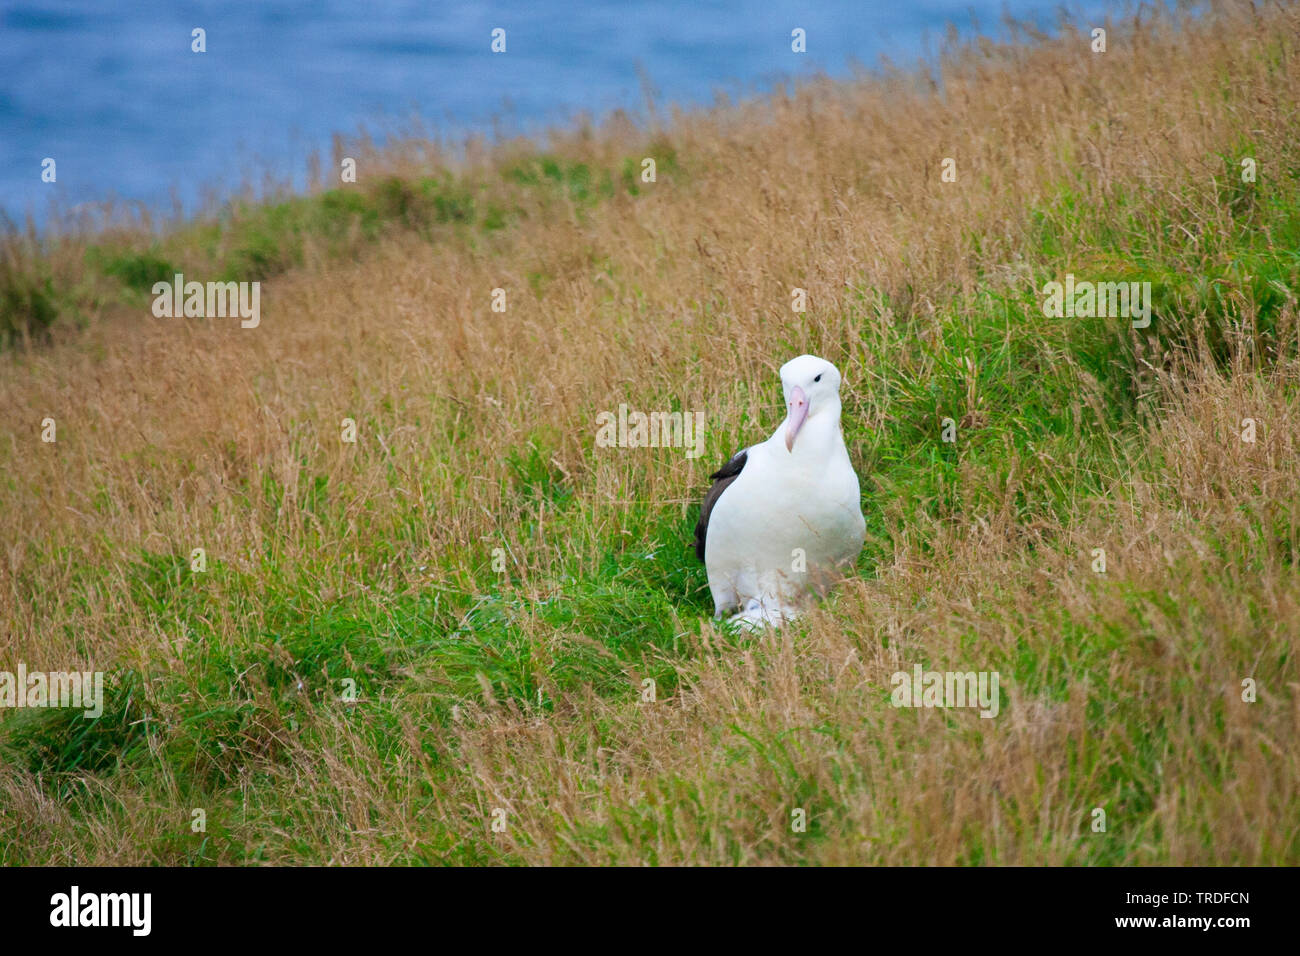 Noerdlicher Koenigsalbatros, Noerdlicher Koenigs-Albatros (Diomedea sanfordi), im Gras, Neuseeland | Northern Royal Albatross (Diomedea sanfordi), in - Stock Image